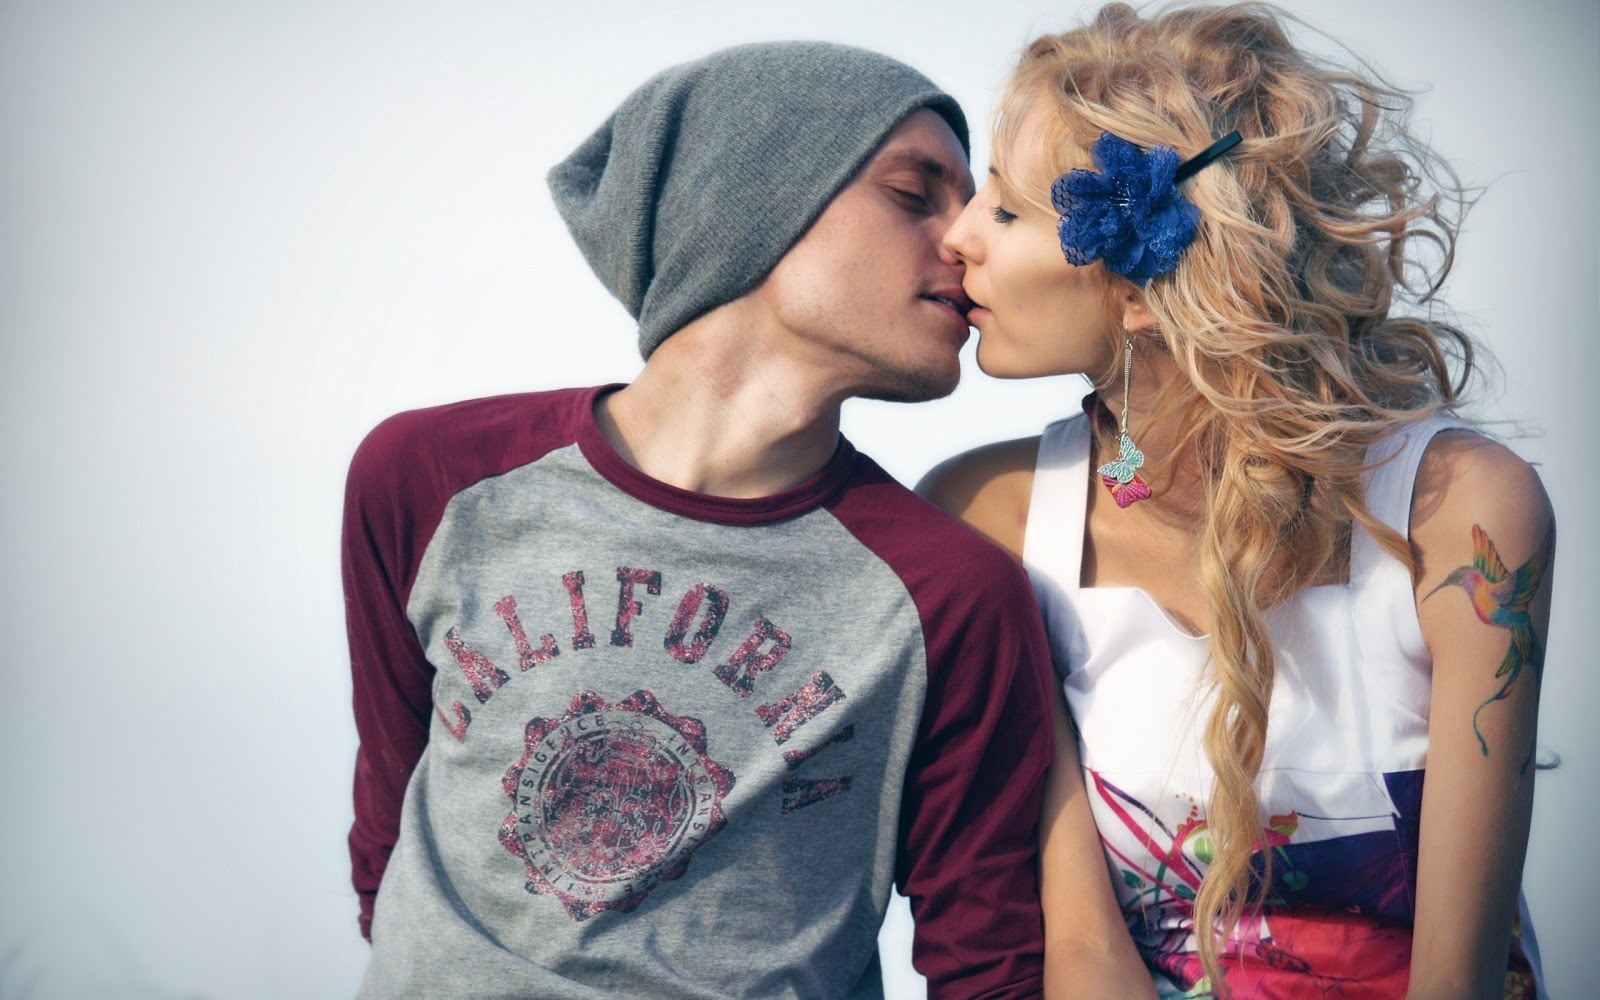 Wallpaper Love Girl Boy Kiss : Boy Love Blonde Girl Kiss HD Wallpaper Love Wallpapers Romantic Wallpapers - Stock Photos ...